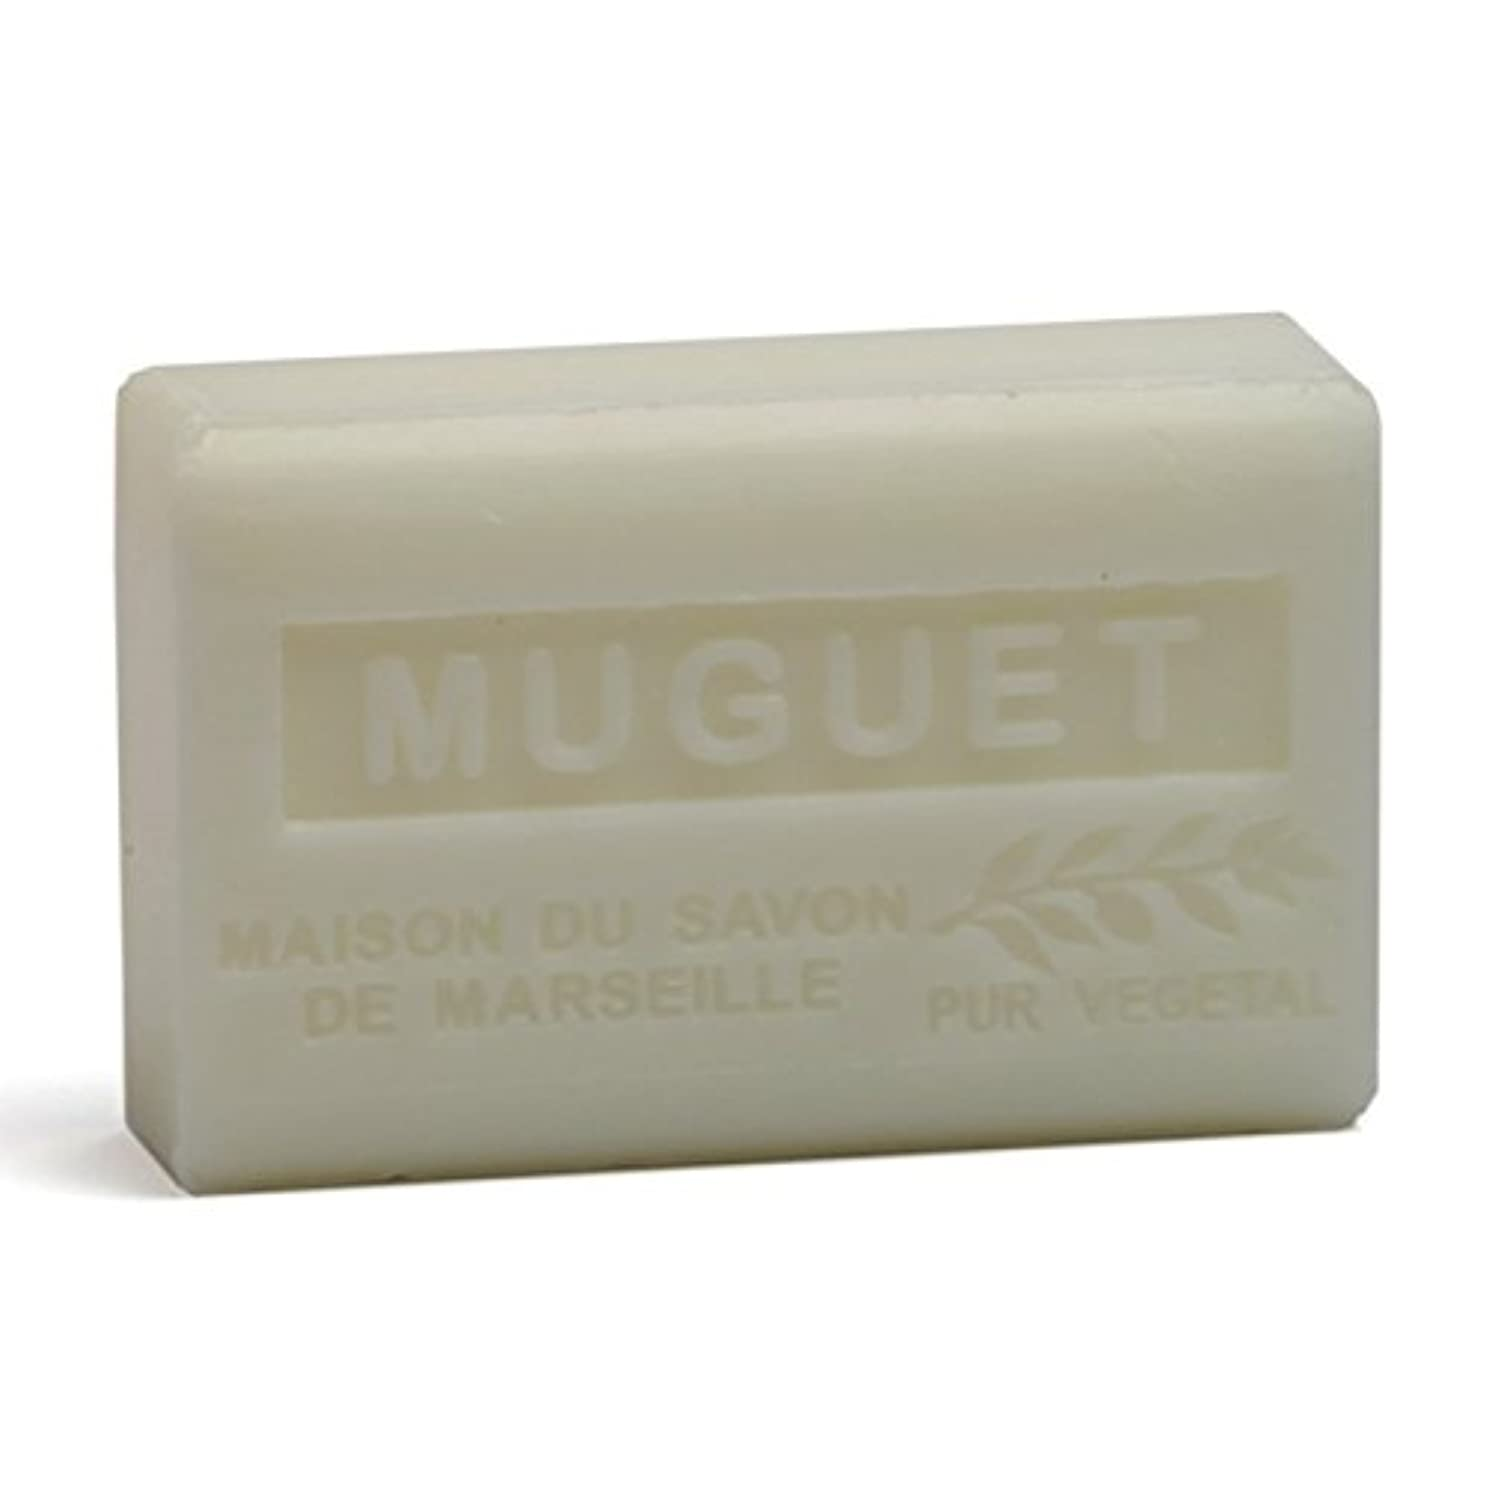 火薬法的一生Savon de Marseille Soap Lily of the Valley Shea Butter 125g